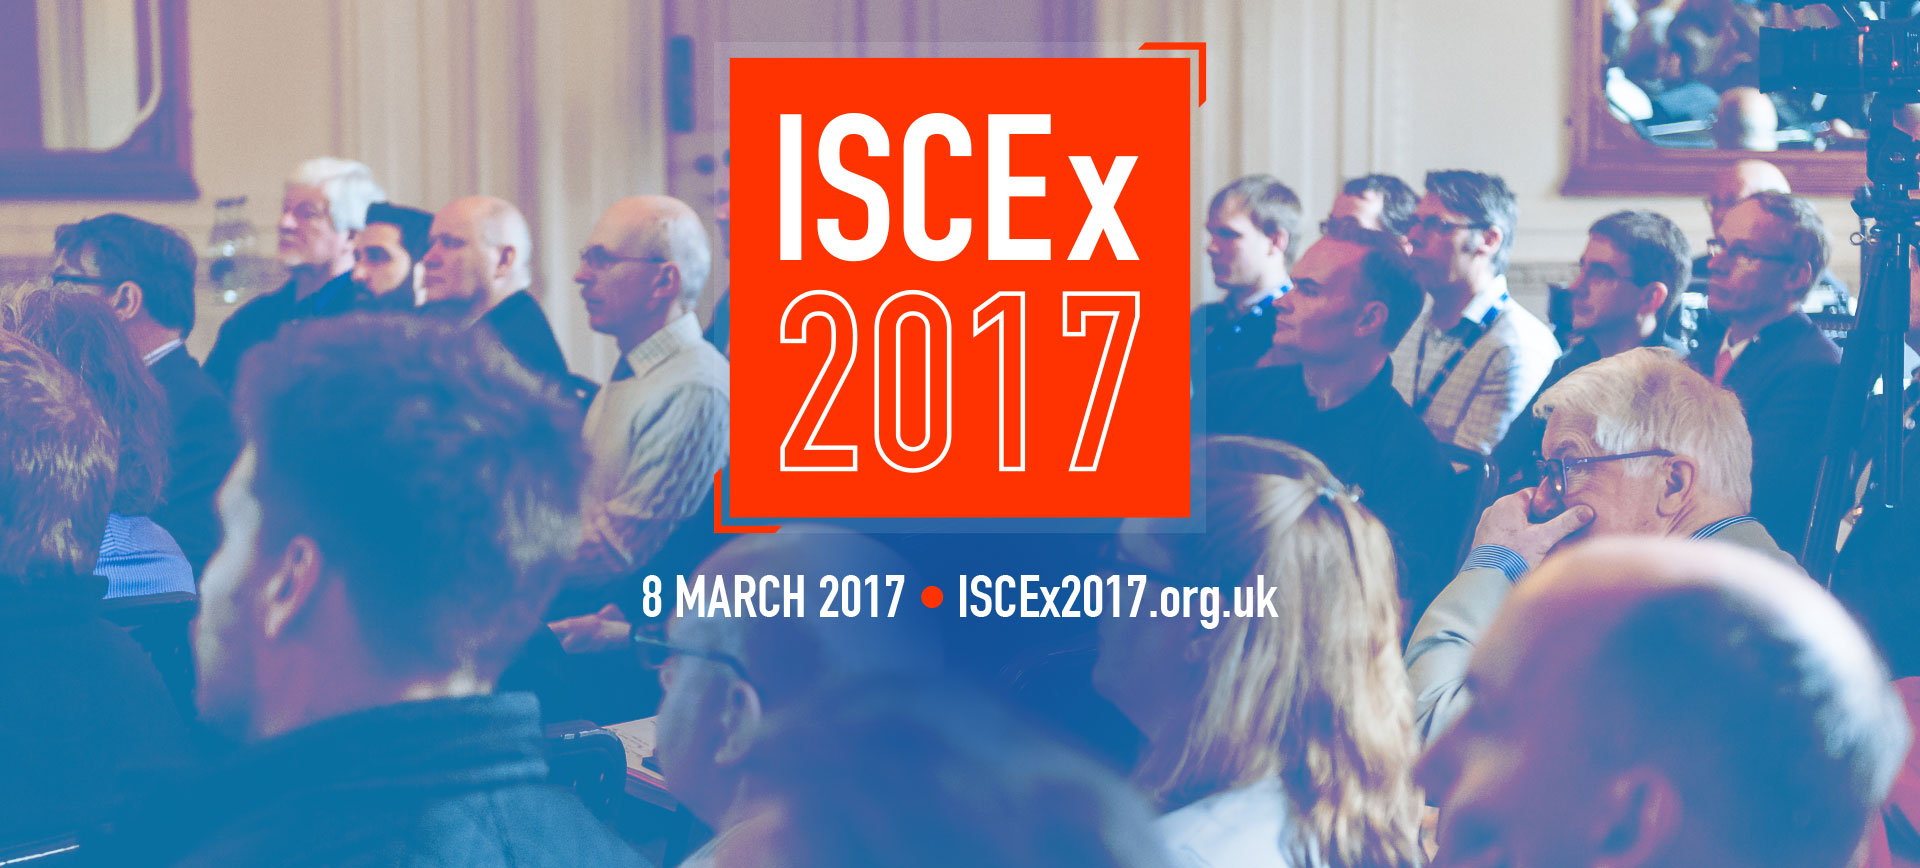 Cloud at ISCEx 2017 - 8th March 2017